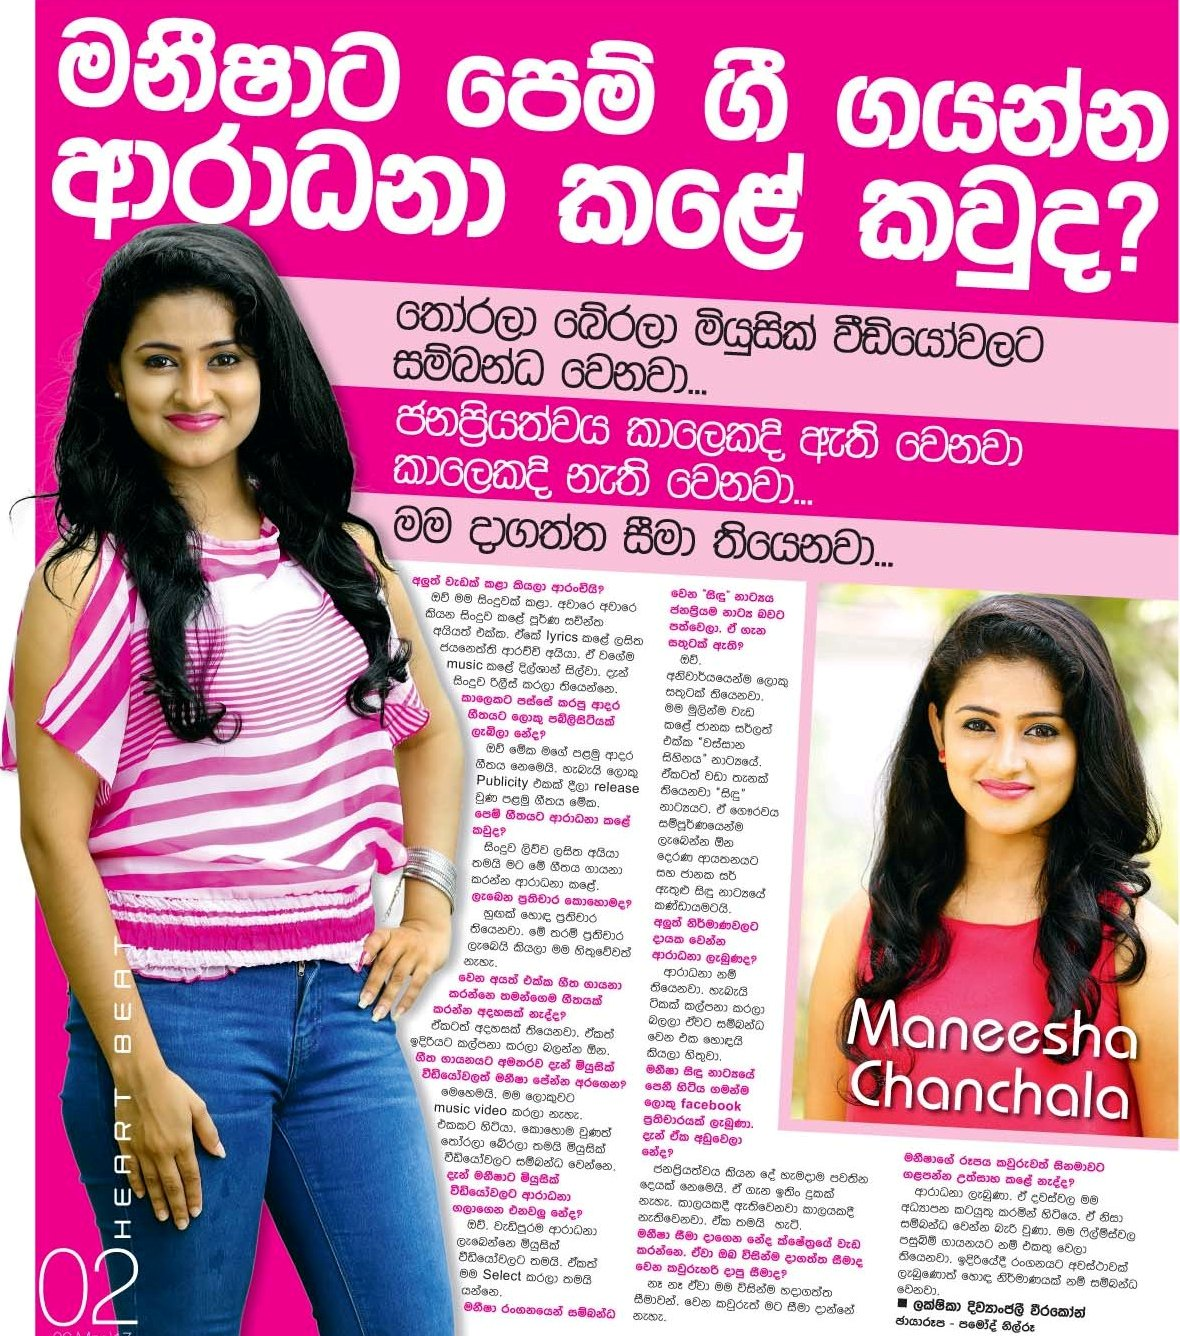 Gossip Chat With Maneesha Chanchala | Gossip Lanka Hot News